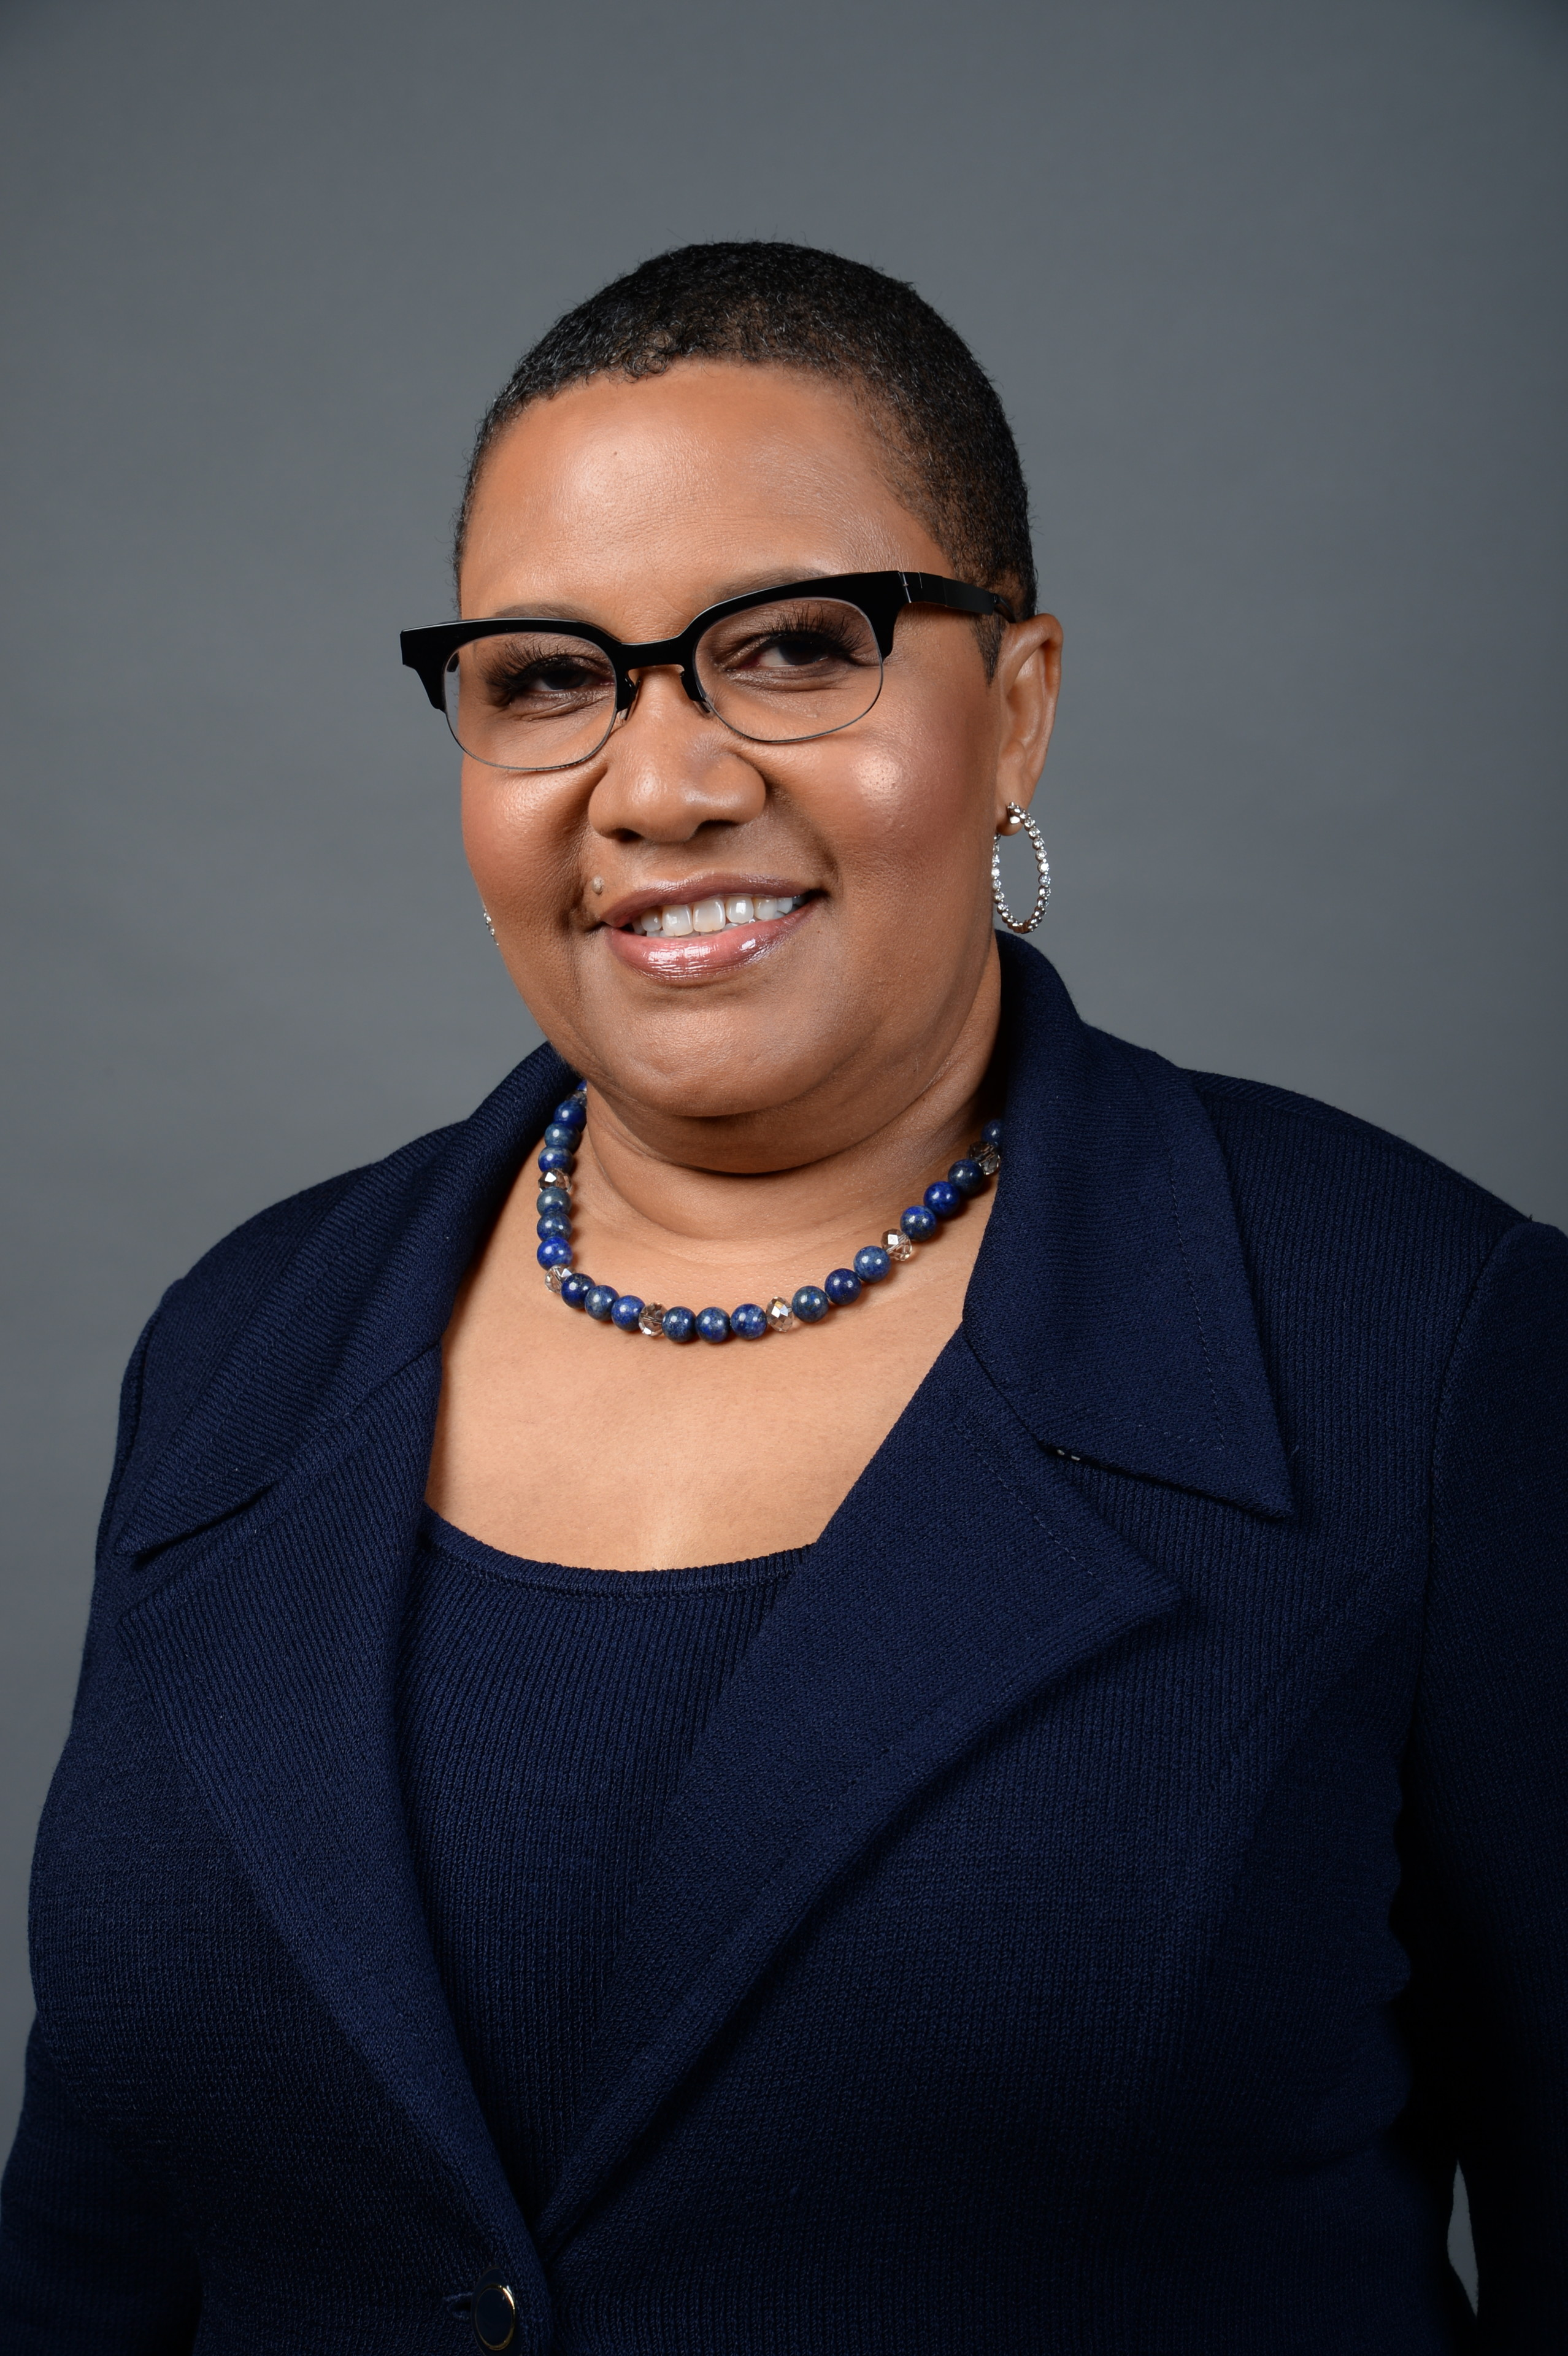 Cover image for  article: Advancing Diversity Inductee:  NBA CMO Pam El